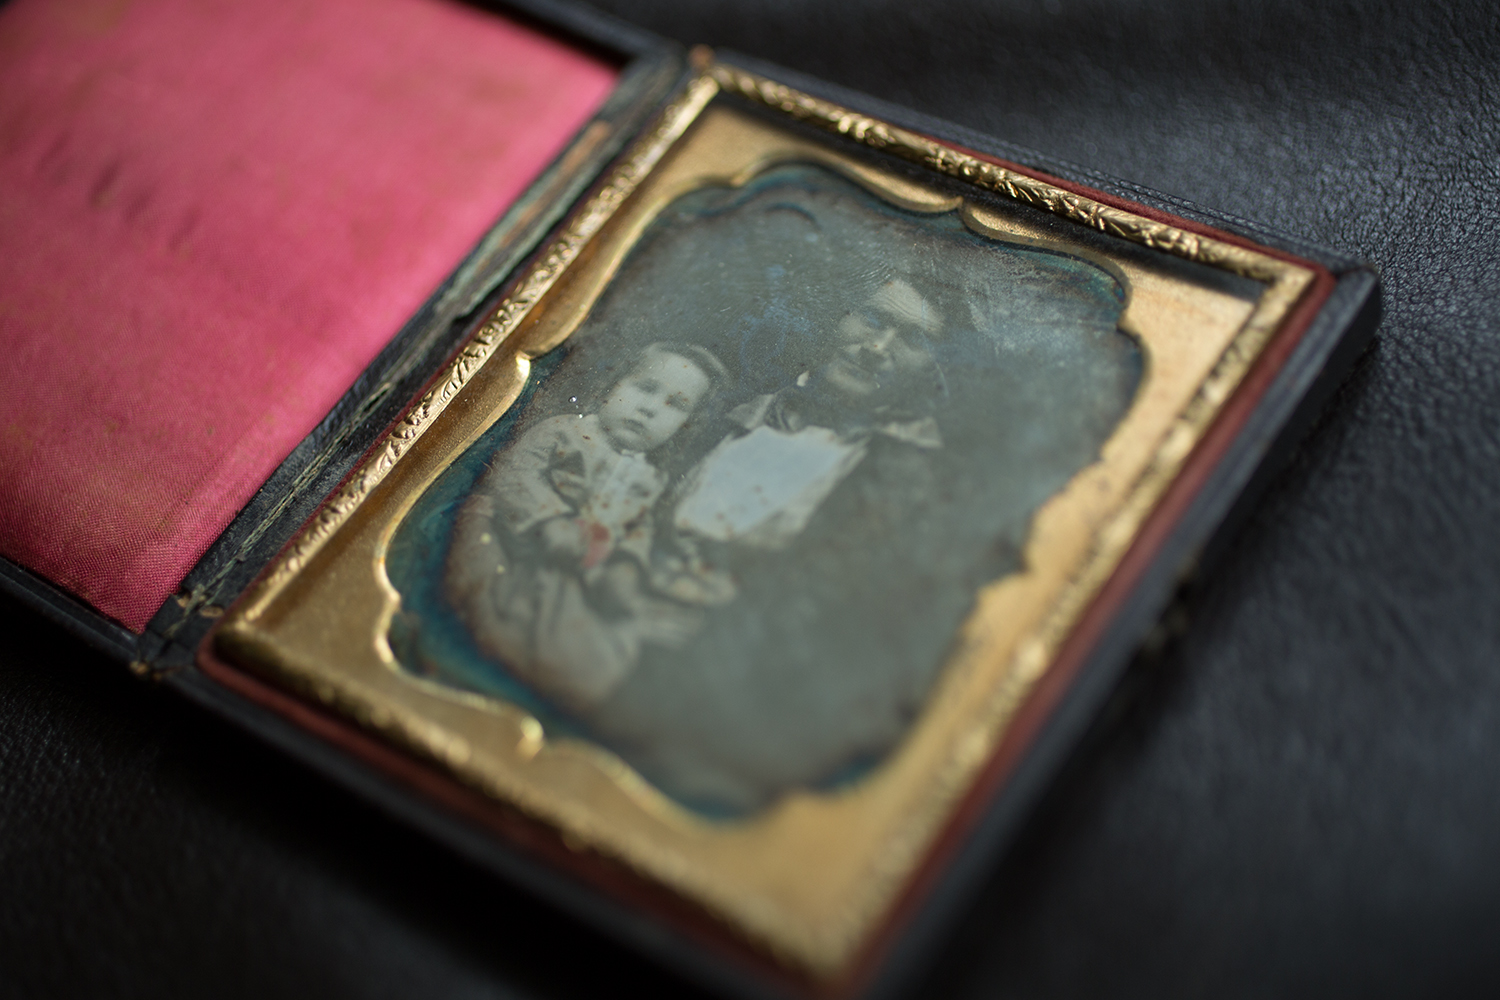 19th-century daguerreotype from Amy Brost's study collection of photographs , courtesy of Amy Brost